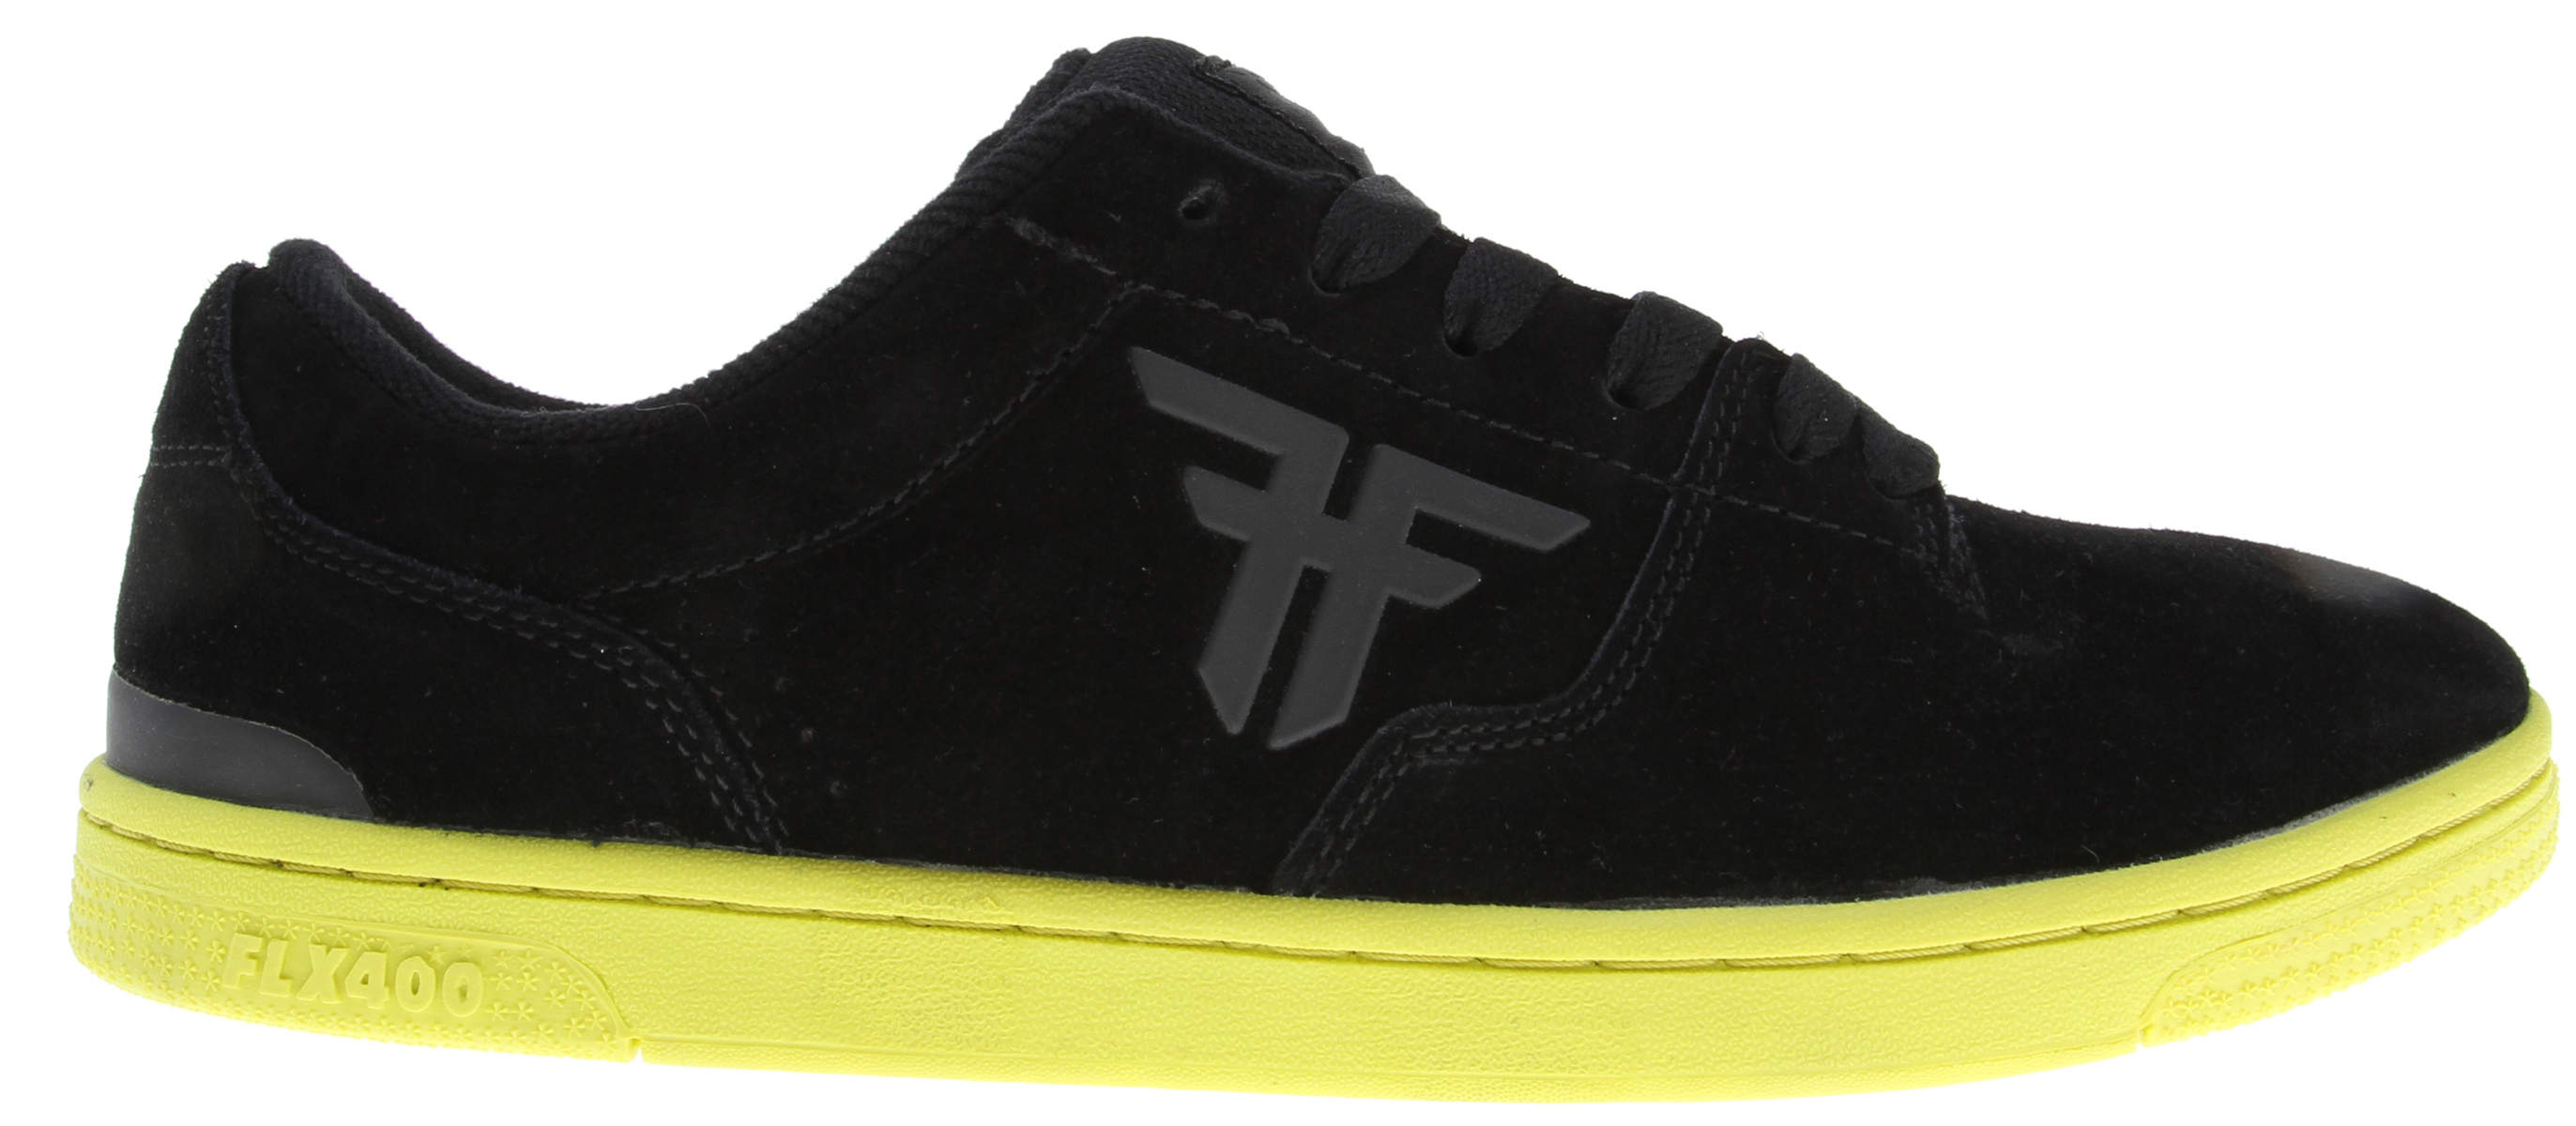 Skateboard The Seventy Six is Tom Asta's second signature model shoe. With a modern athletic appeal and classic Fallen styling, this shoe is designed to meet Tom's technical needs in a skate shoe.Key Features of the Fallen Seventy Six Skate Shoes: Features a slim low-profile upper made from heavy-duty suede and light mesh with minimal padding for support and maneuverability As the most technically advanced shoe in the Fallen line, the Seventy-Six features our signature FLX midsole construction on a 400 NBS outsole to increase grip and durability against abrasion while ensuring maximum board feel Also features a premium insole for impact absorption and a heel stabilizer to provide support and longevity to the upper Made with heavy-duty suede, canvas or denim, perfect combination of technology and simplistic design - $42.95